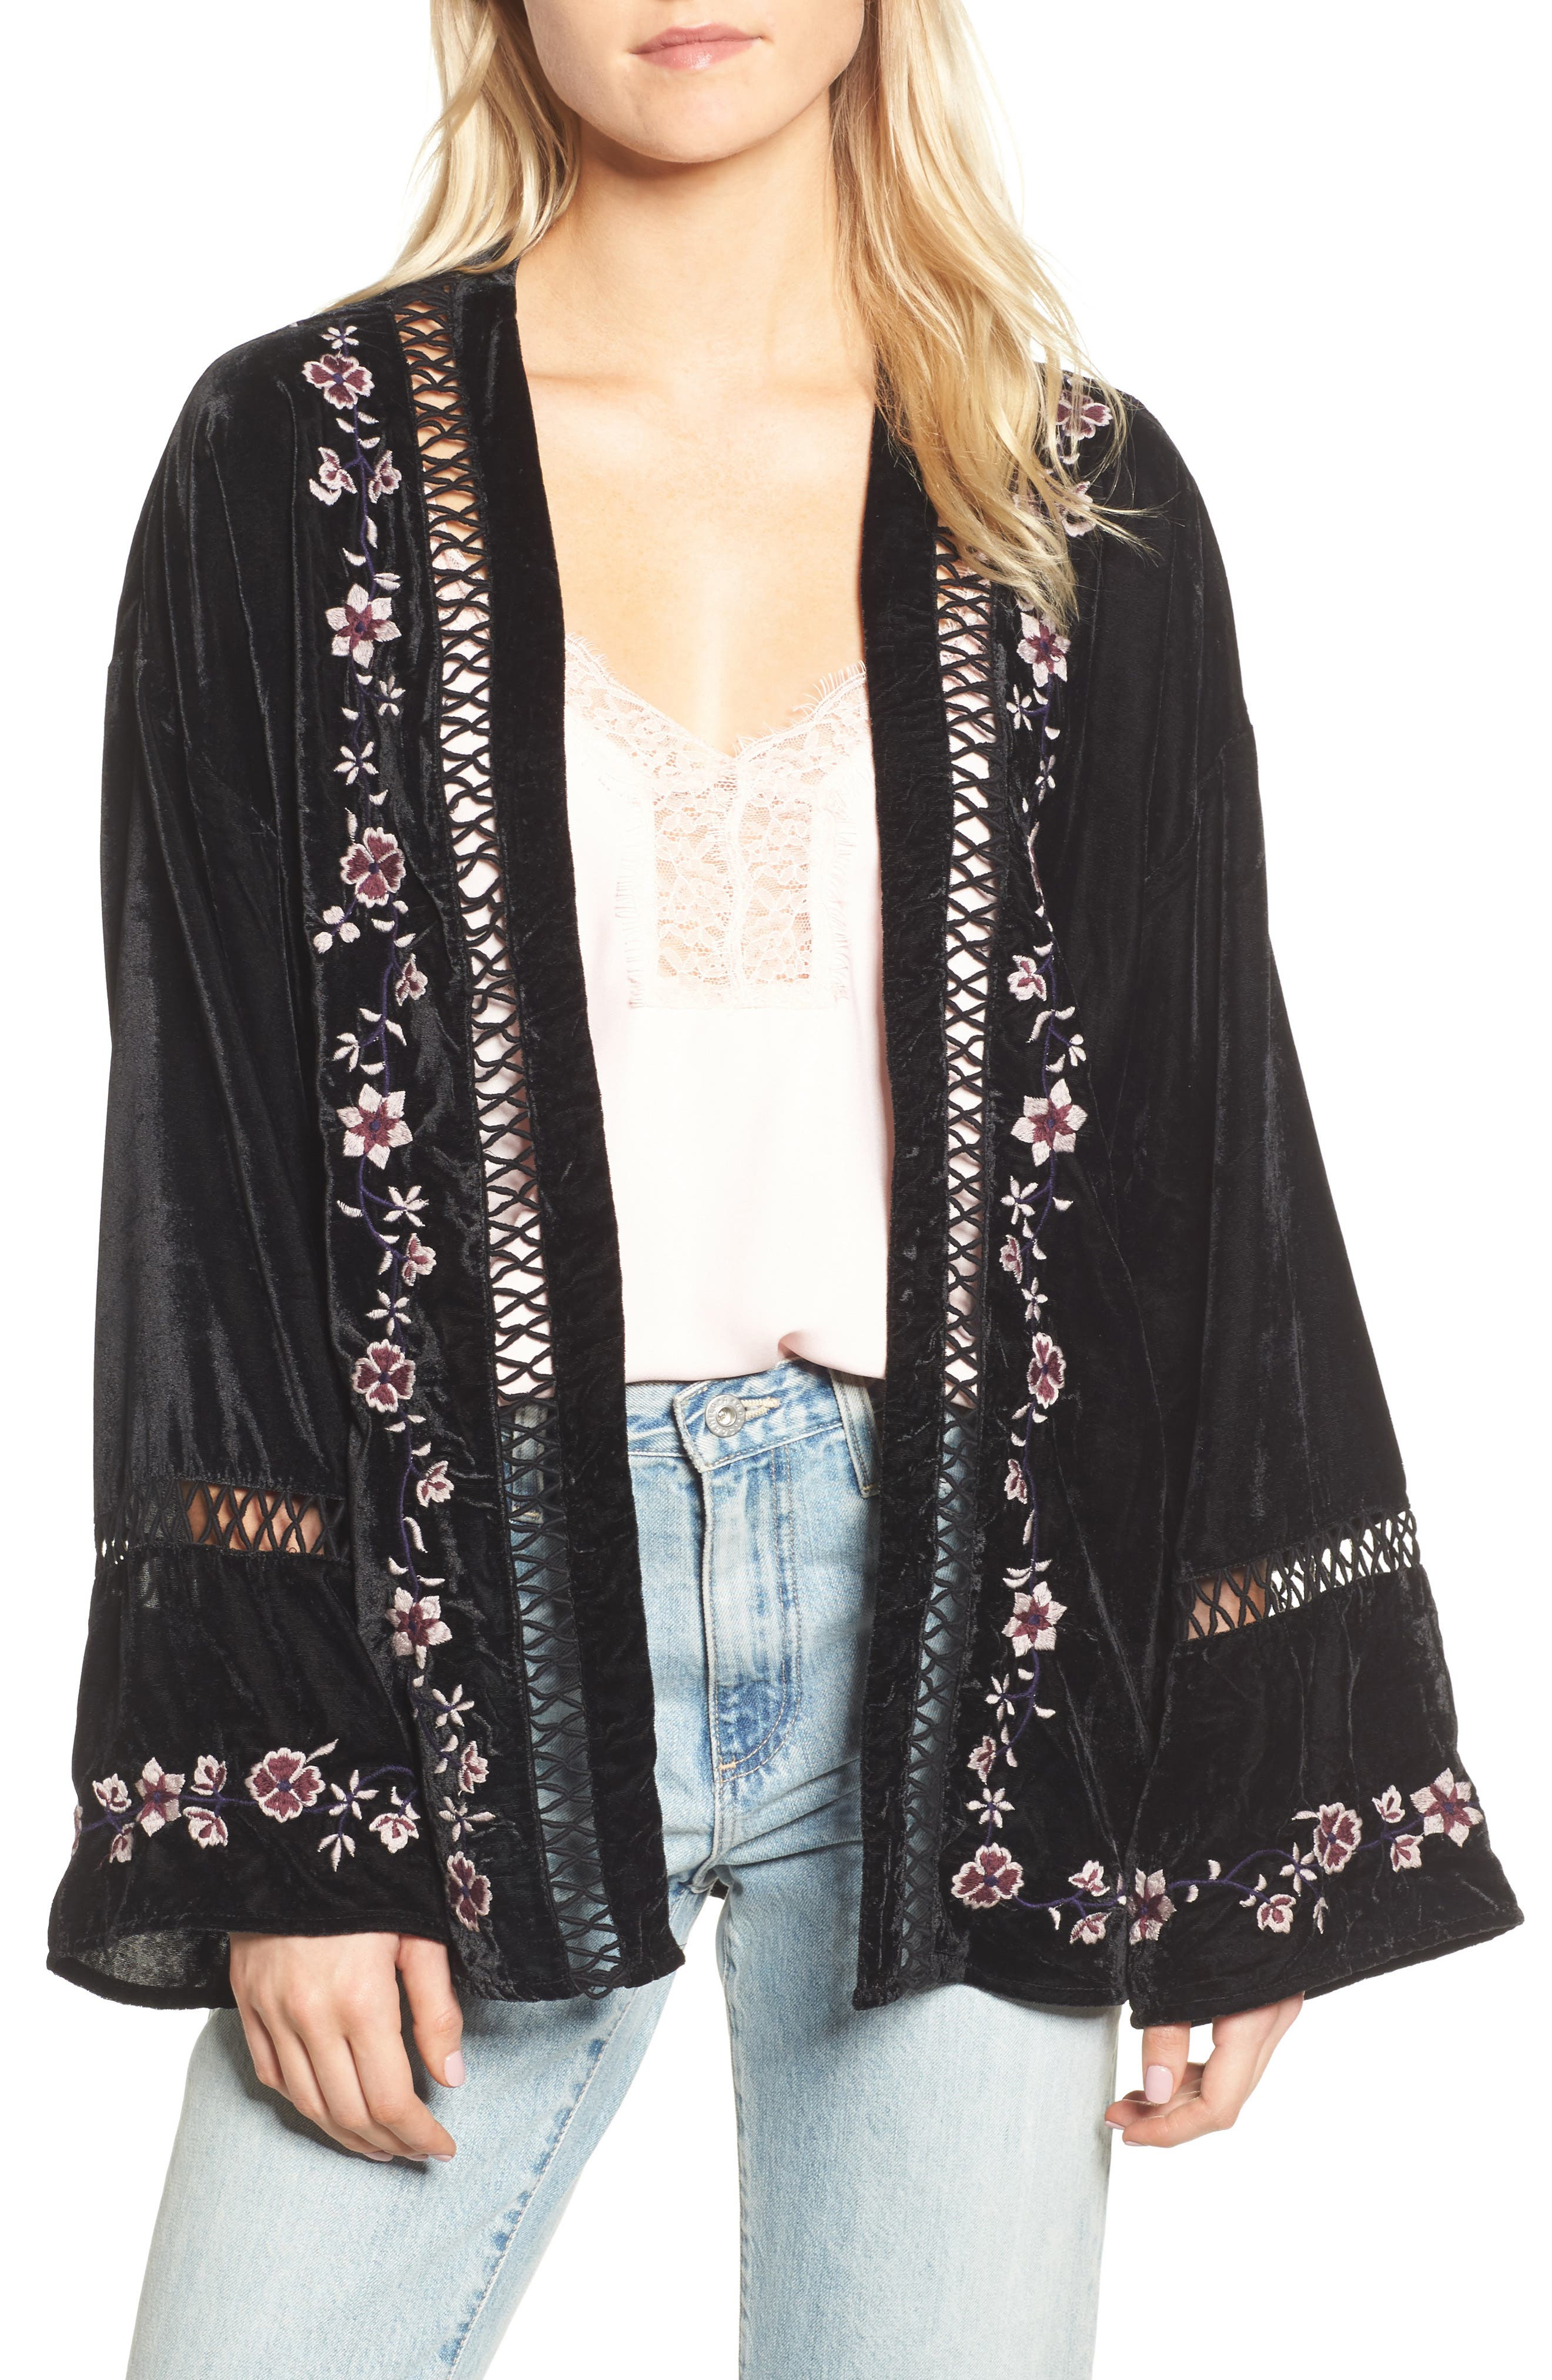 Main Image - Willow & Clay Embroidered Velvet Jacket